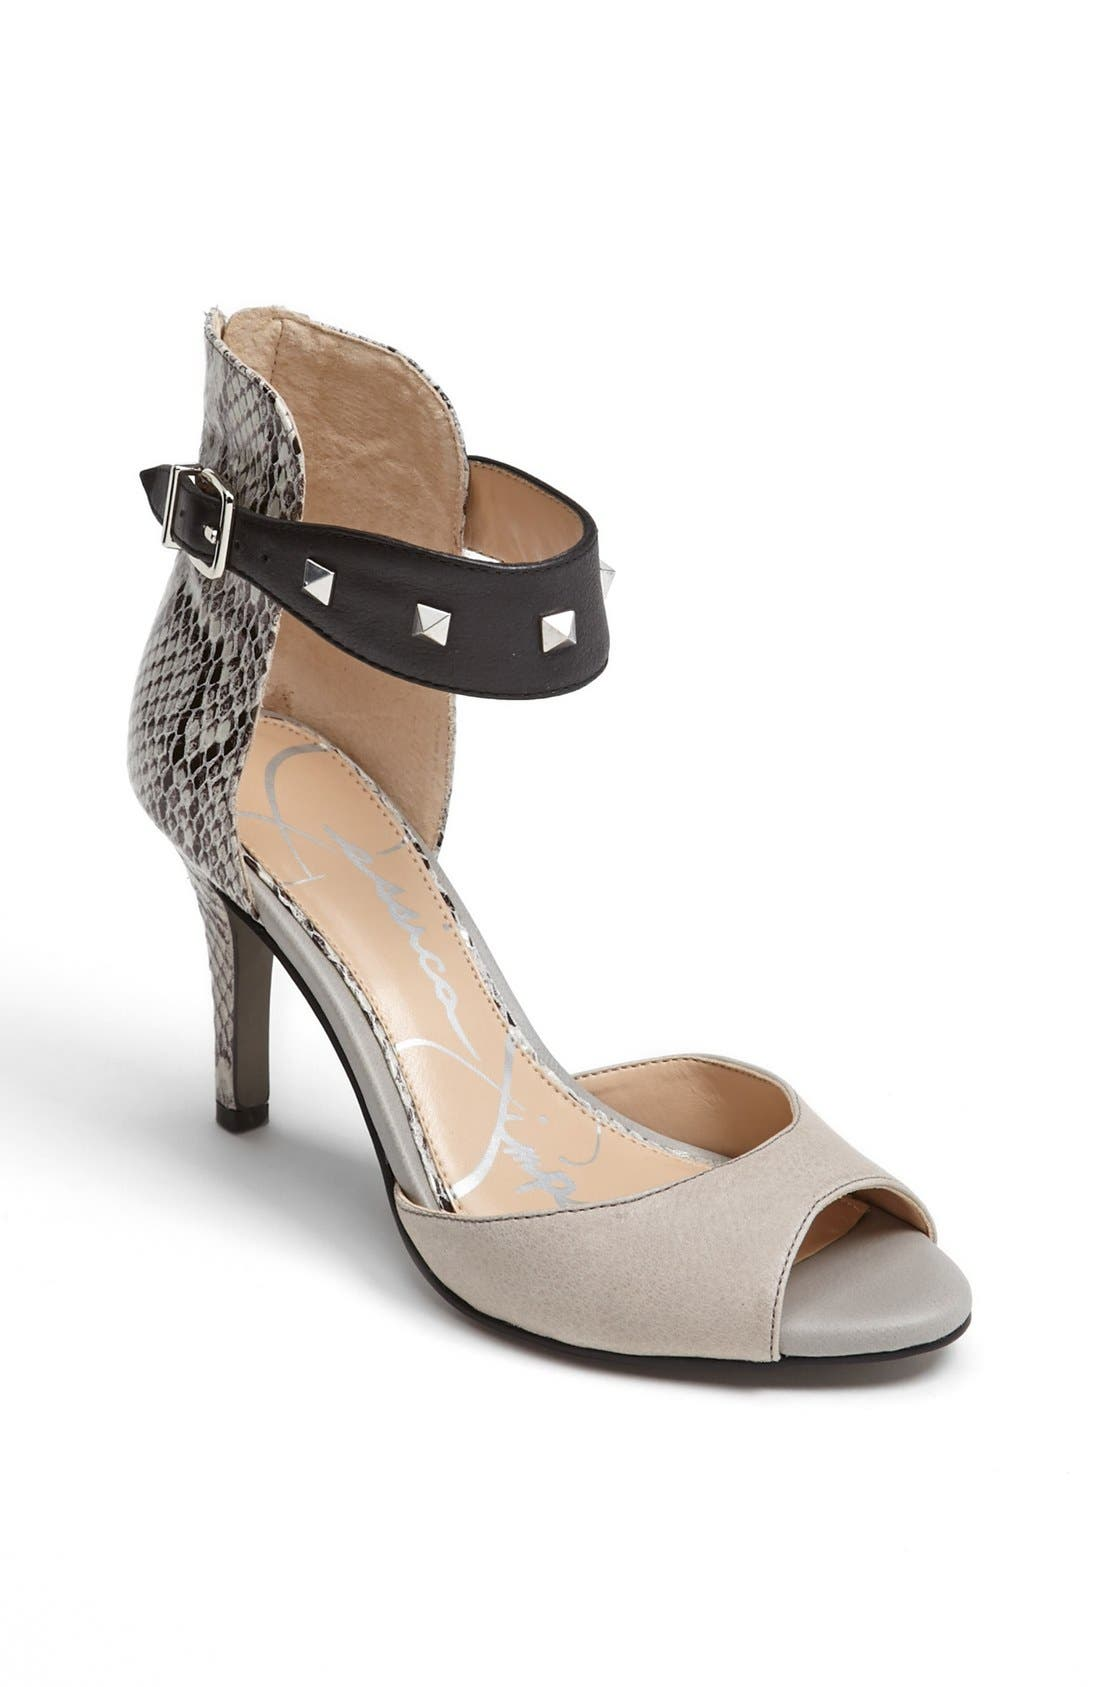 Alternate Image 1 Selected - Jessica Simpson 'Mindie' Pump